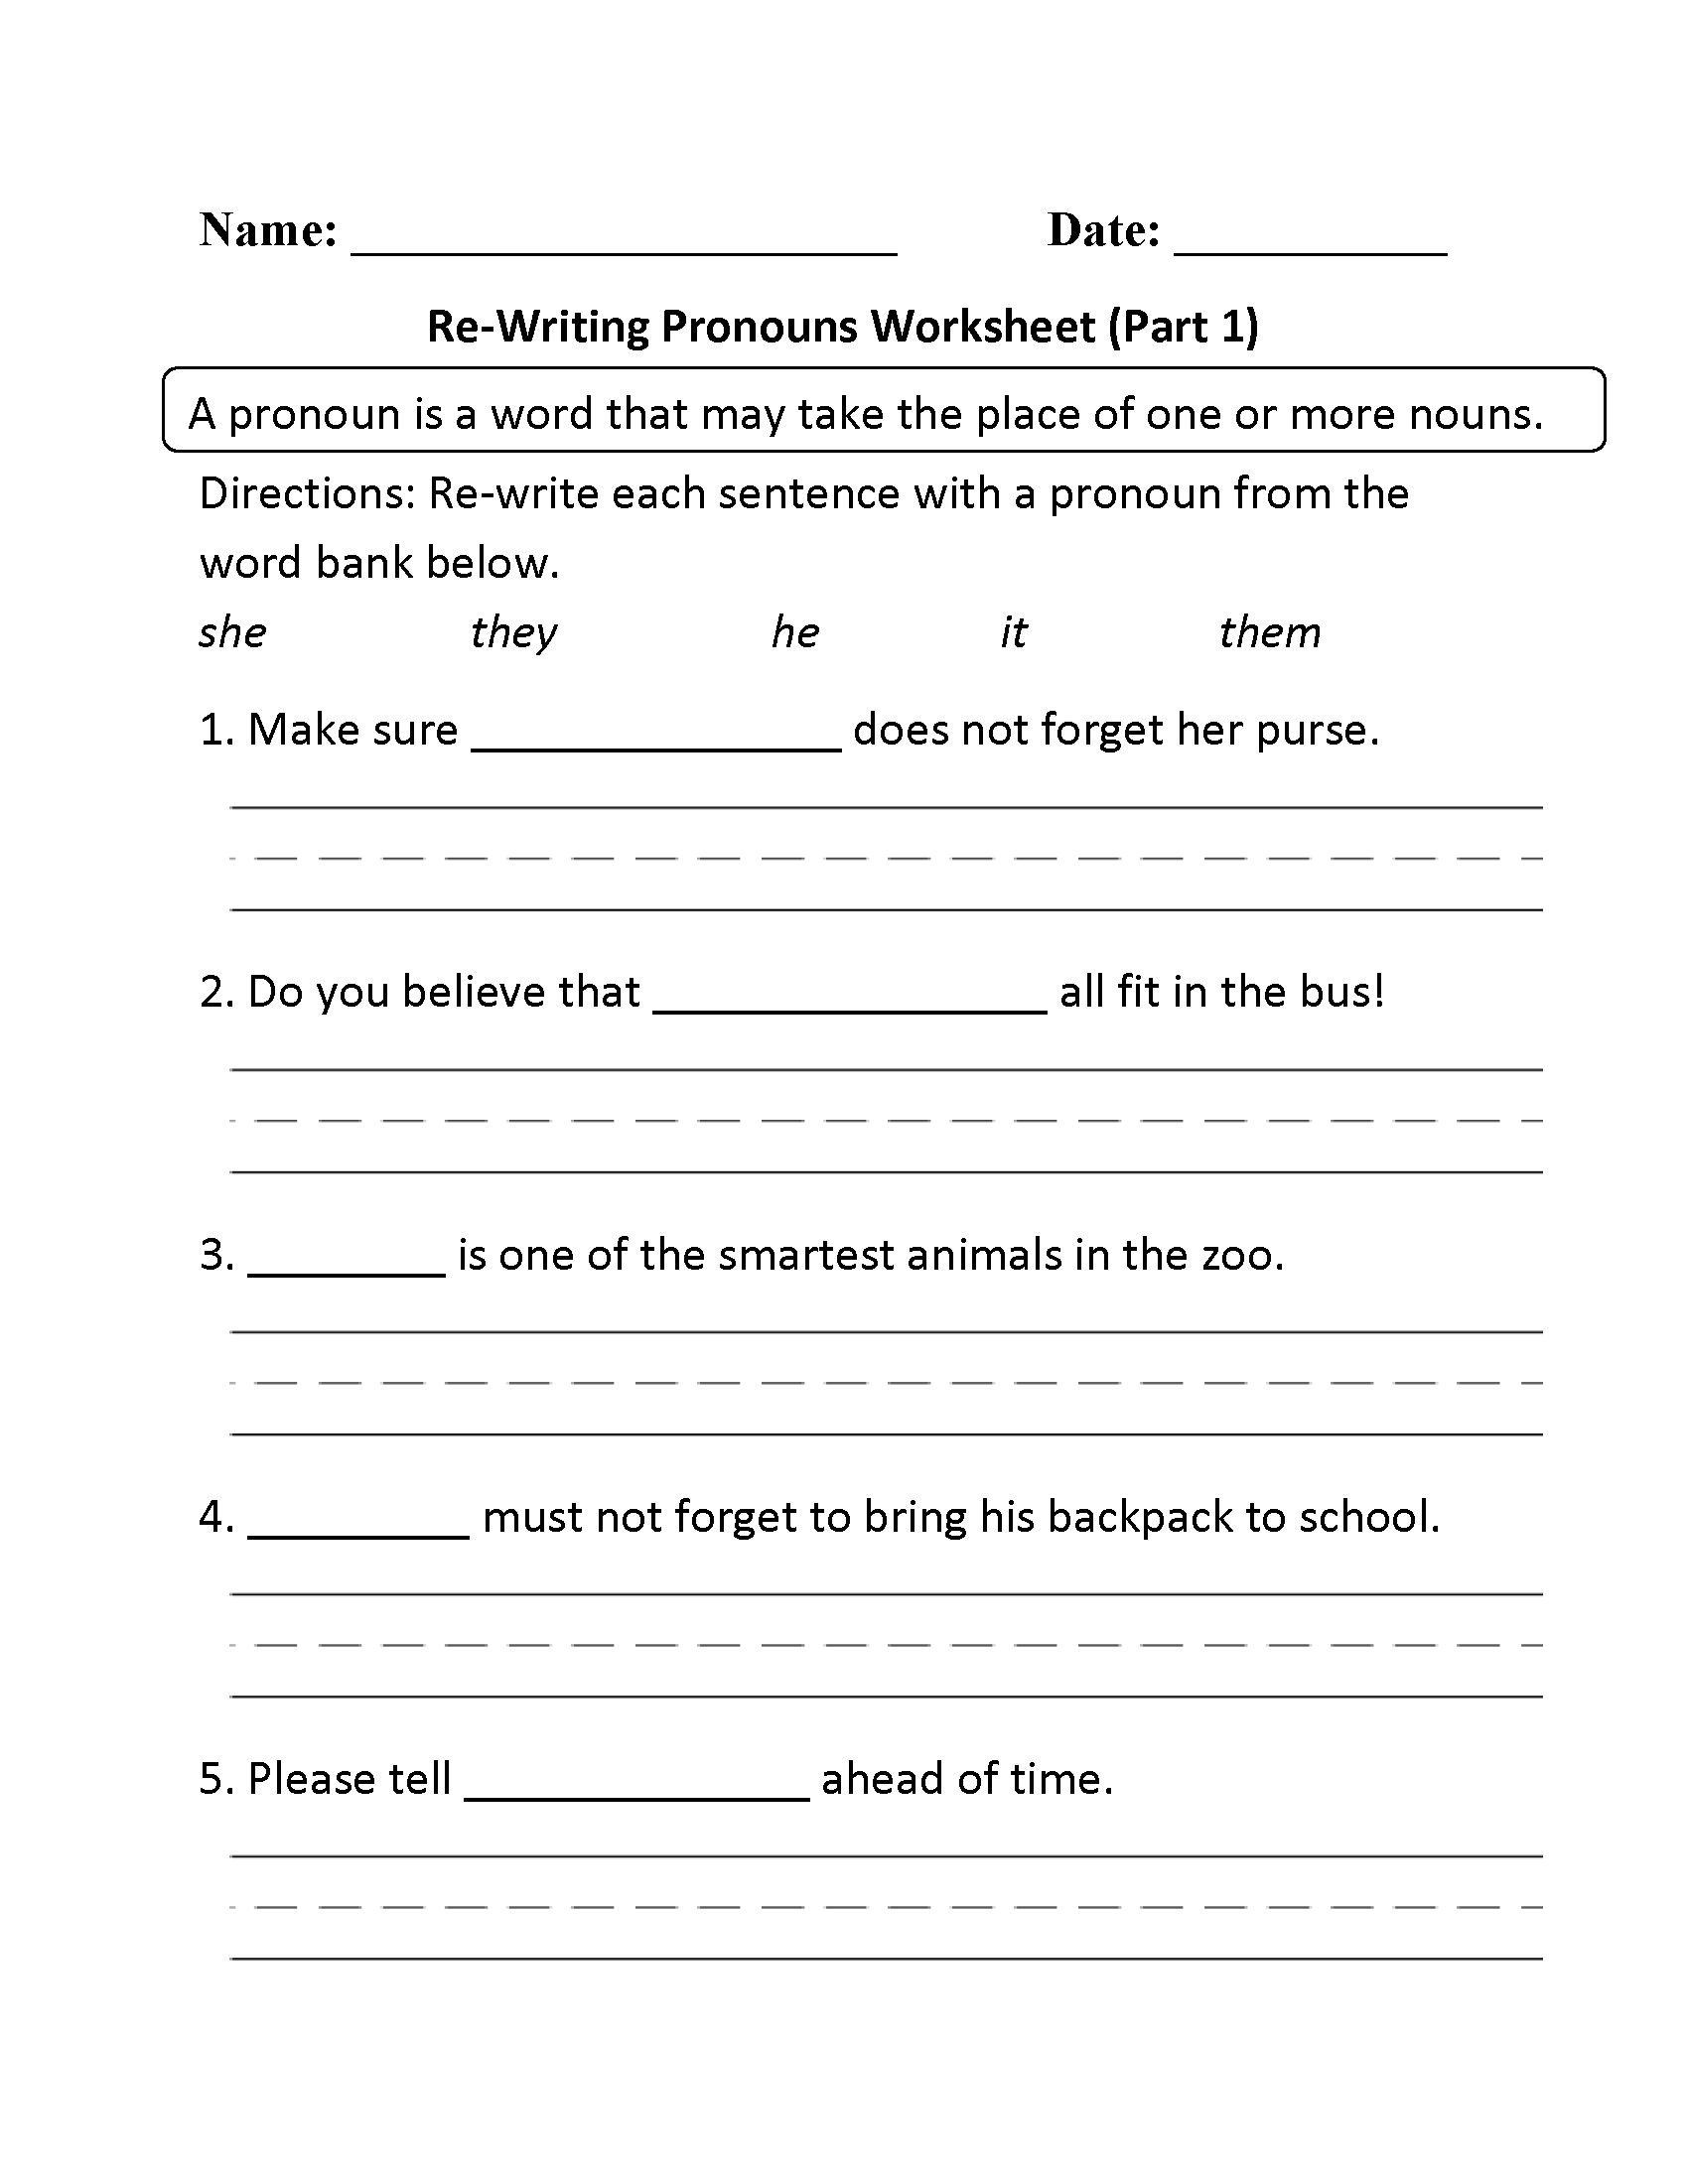 Free Printable Pronoun Worksheets For 2nd Grade